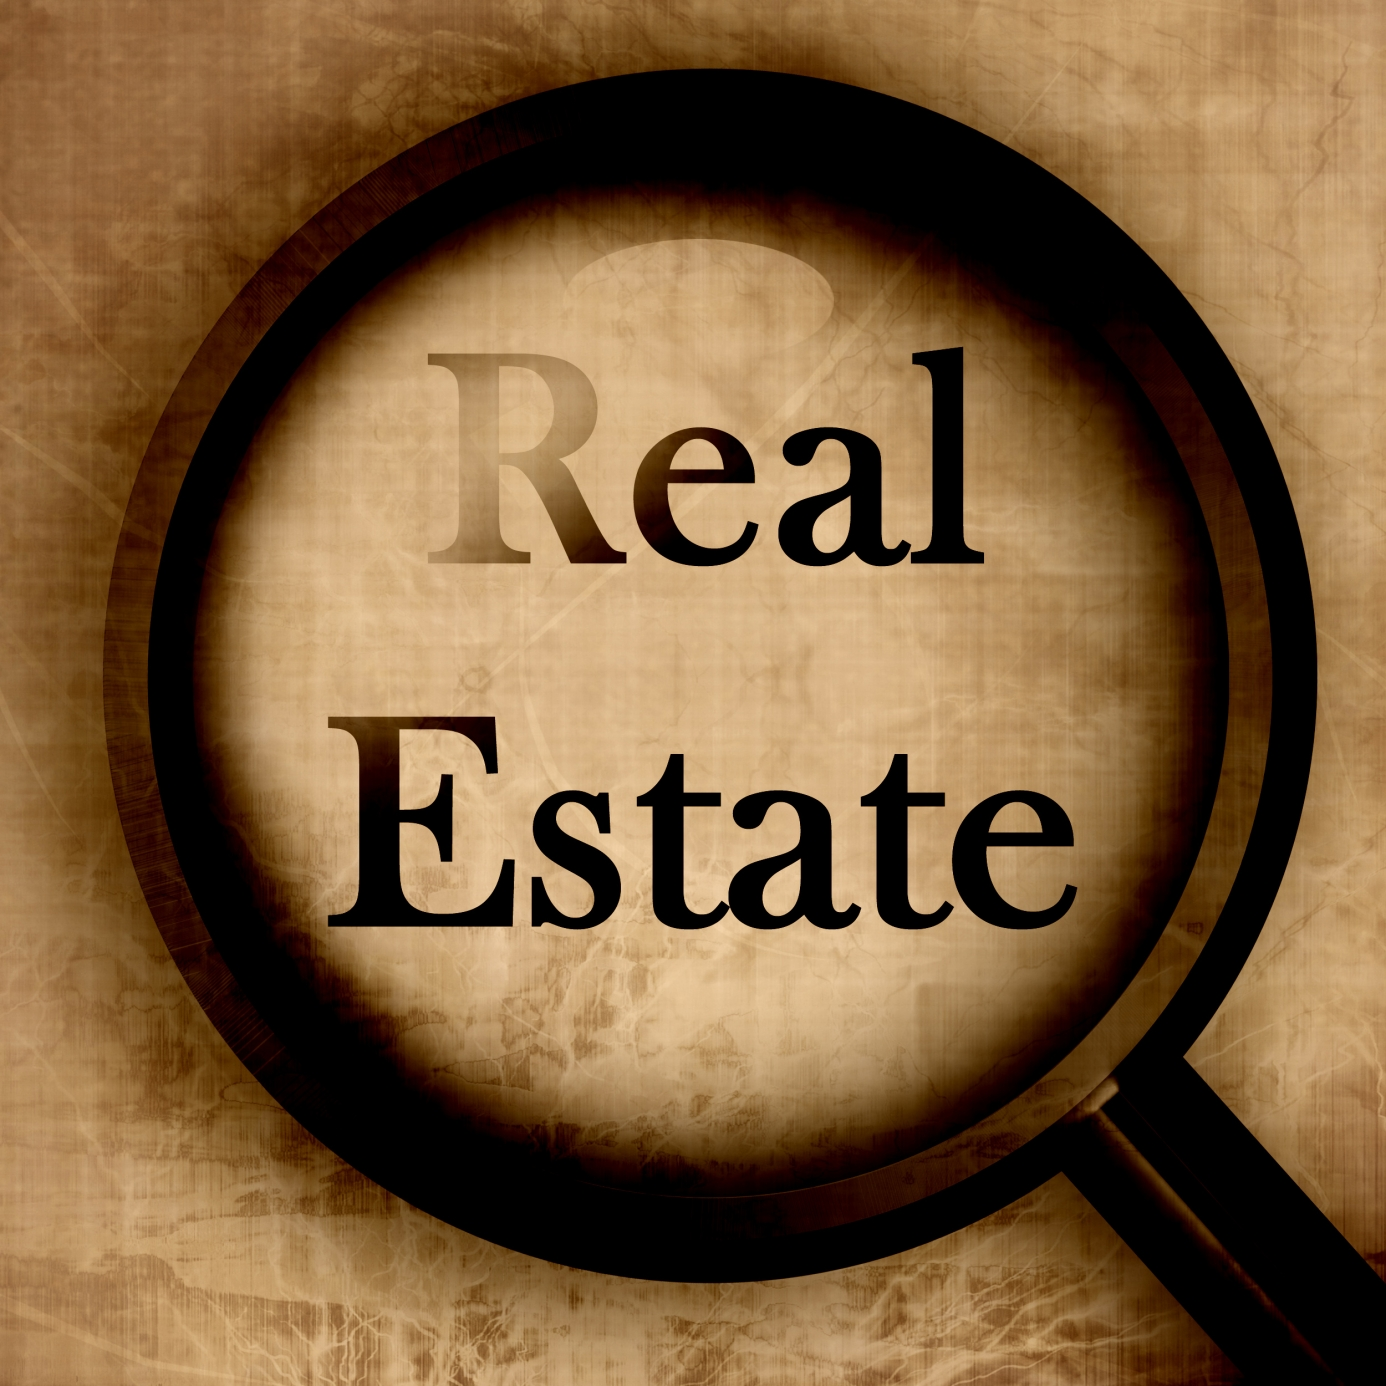 Private real estate Company for sale @ Rs.1.5 lac in Kanpur